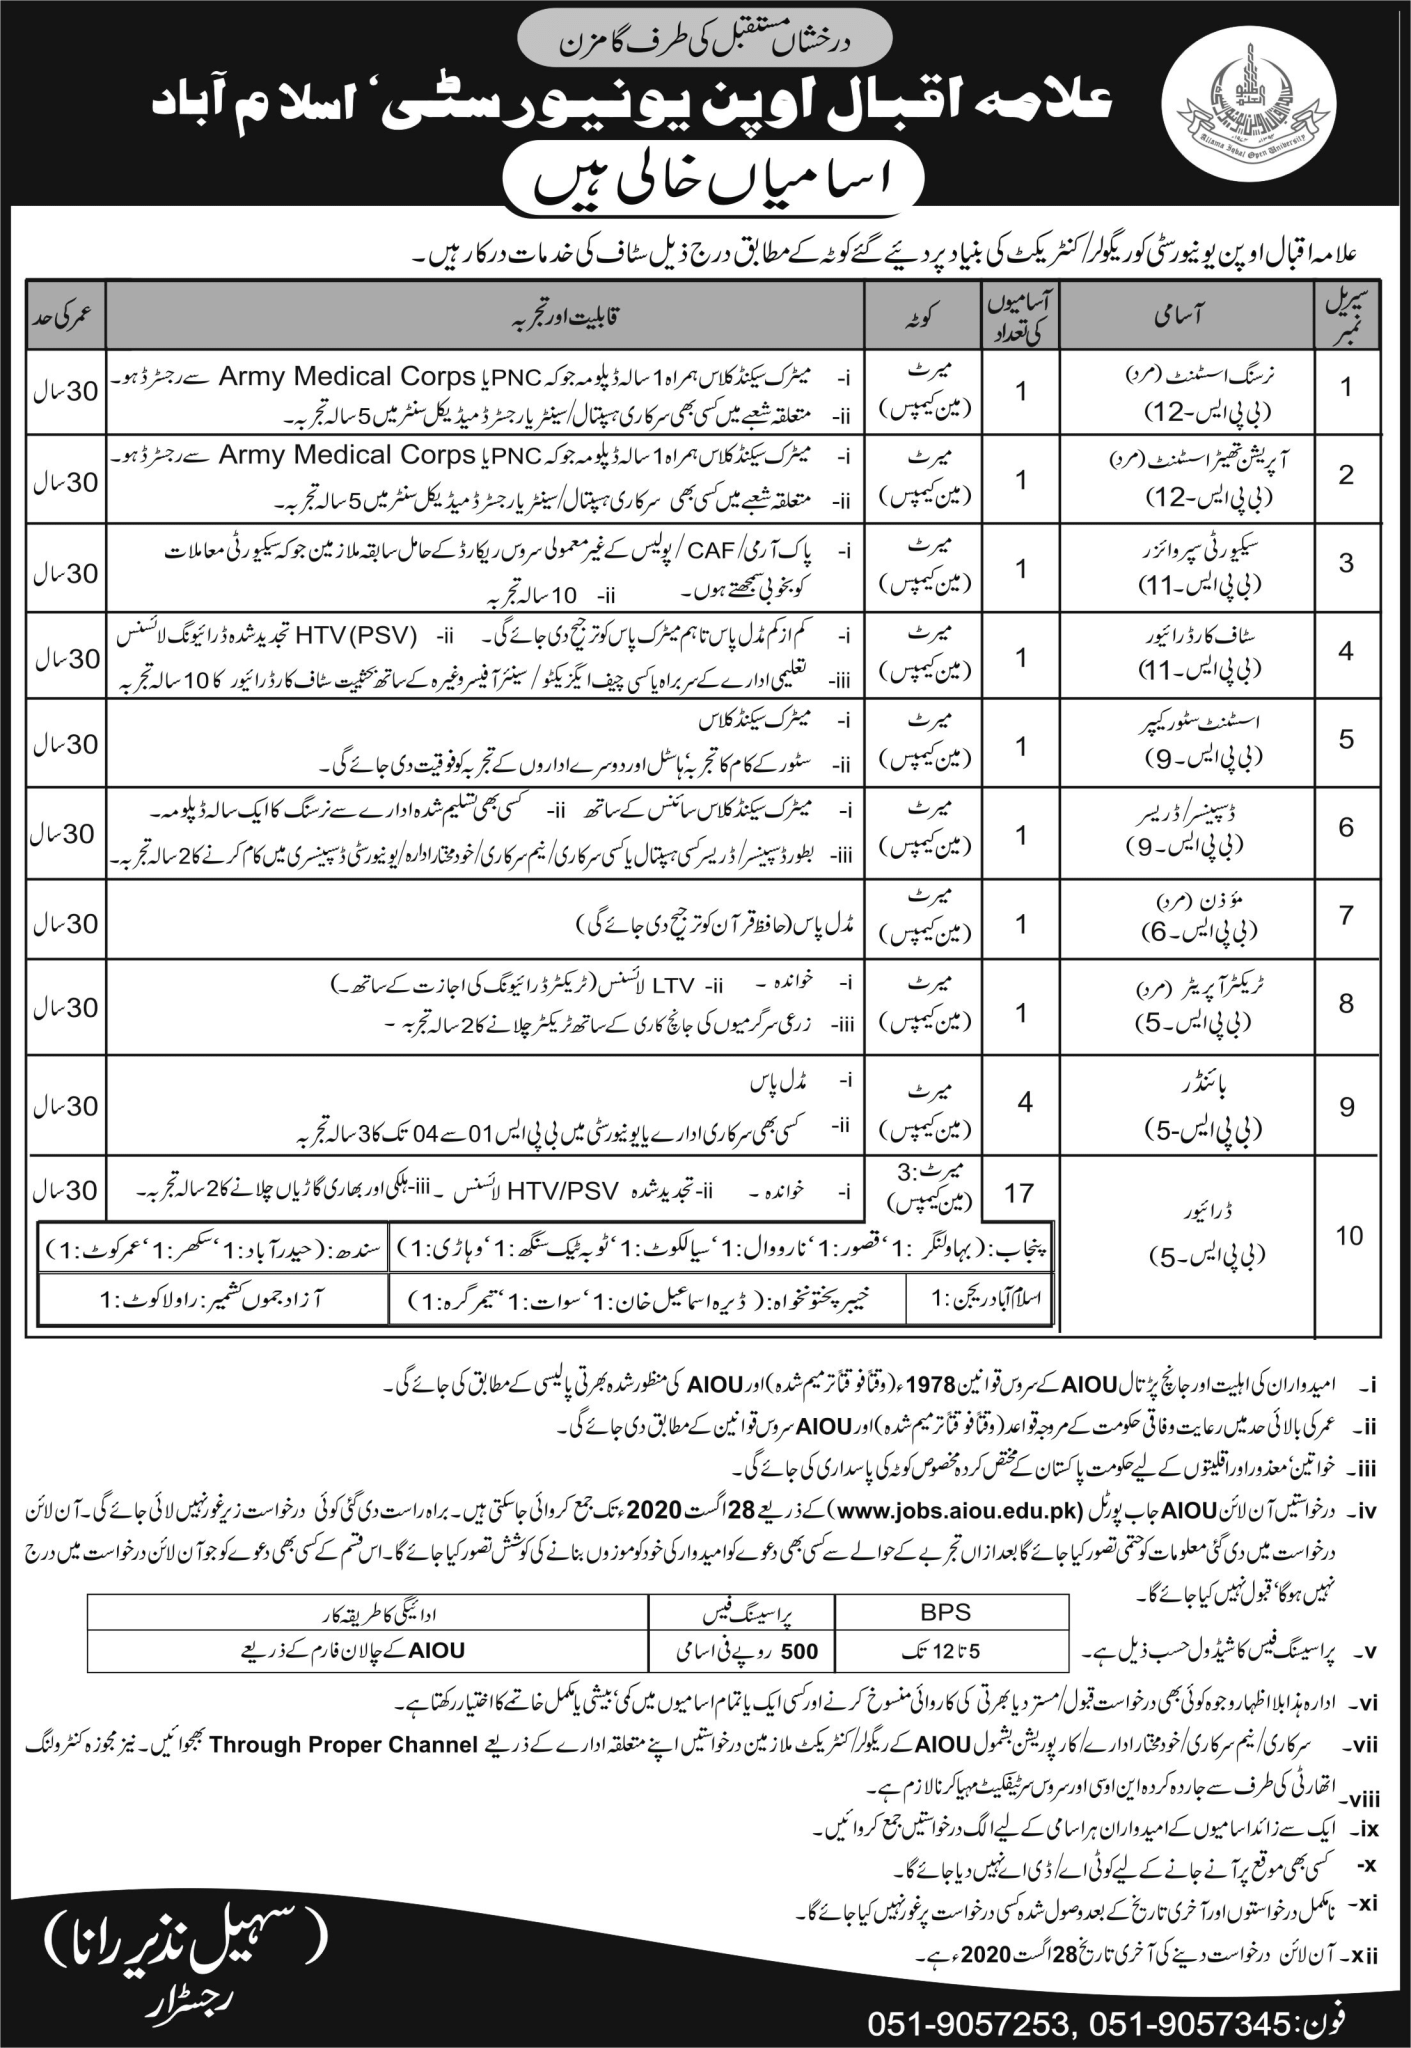 Allama Iqbal Open University Jobs AIOU Jobs